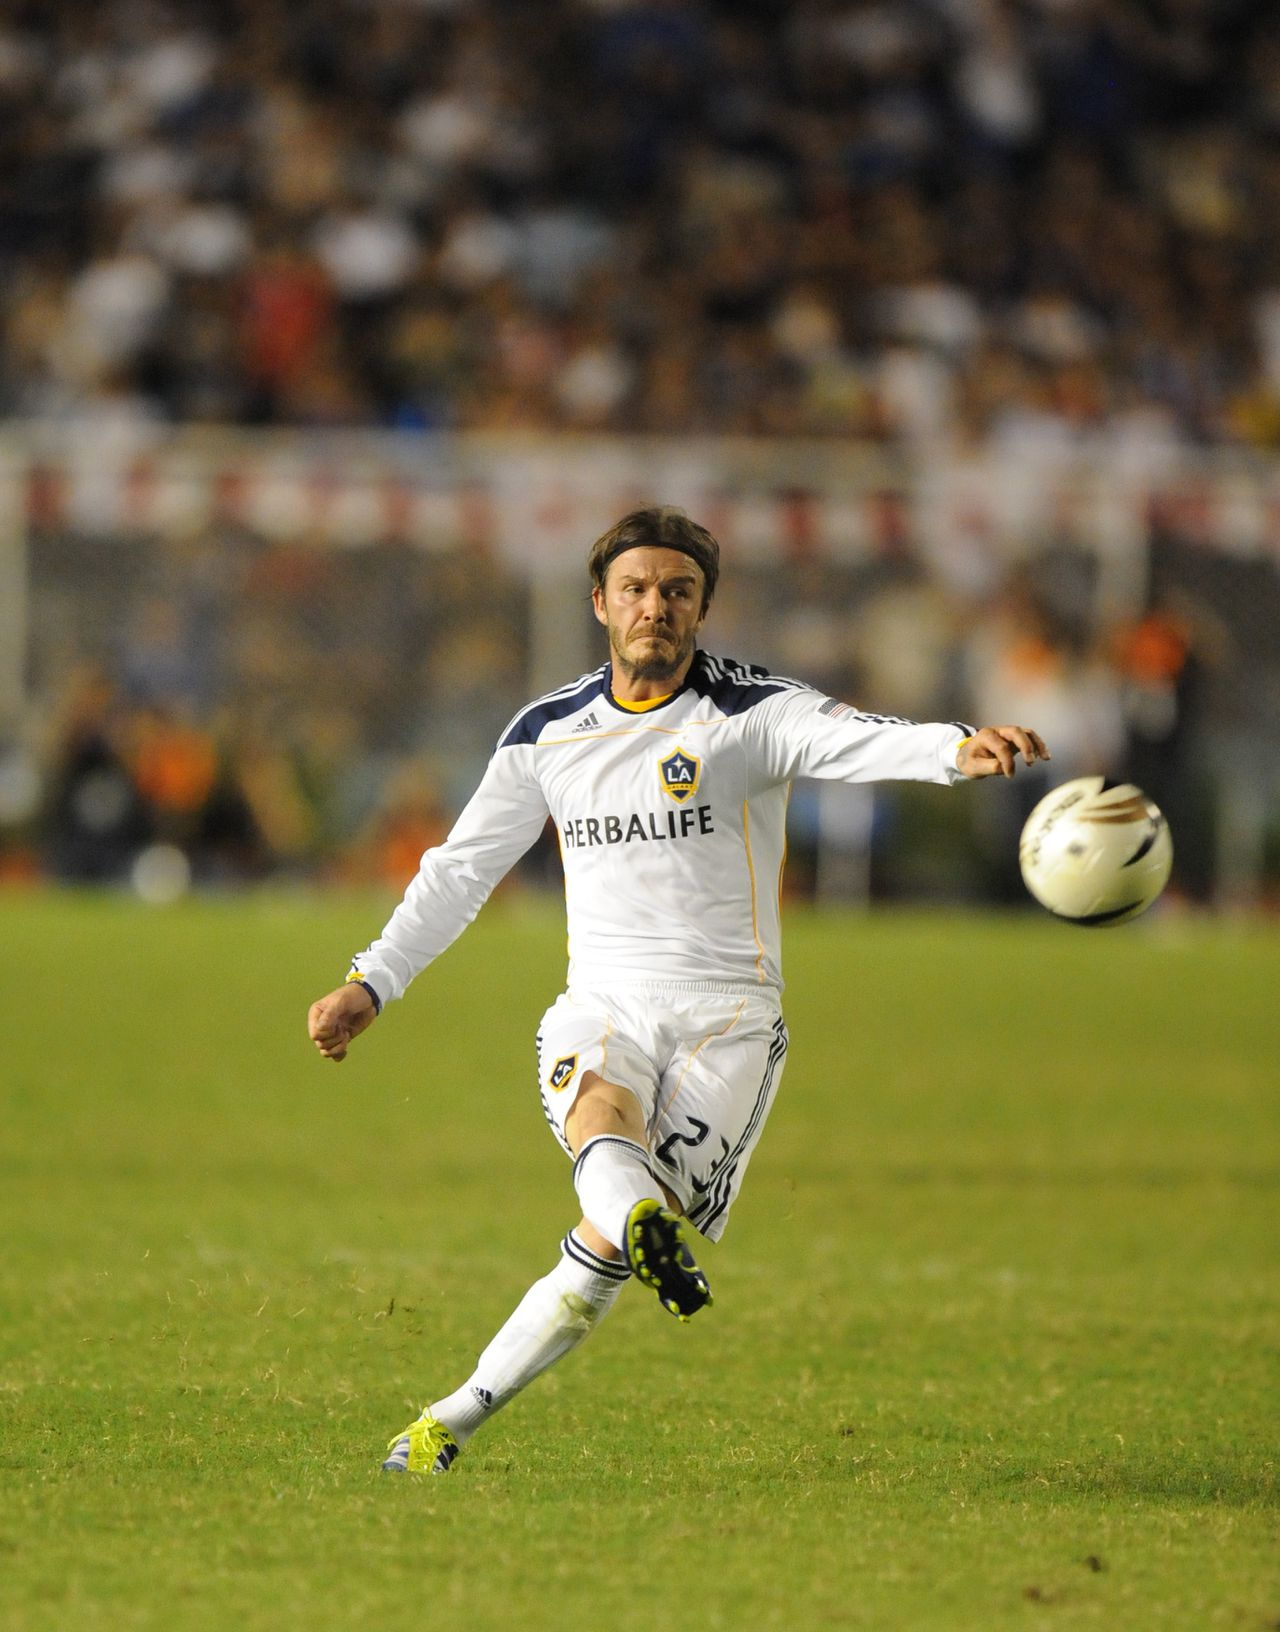 David Beckham of the Los Angeles Galaxy kicks the during their friendly football match against the Philippines' Azkals at the Rizal memorial stadium in Manila on December 3, 2011. LA Galaxy won 6-1. PHOTO/TED ALJIBE